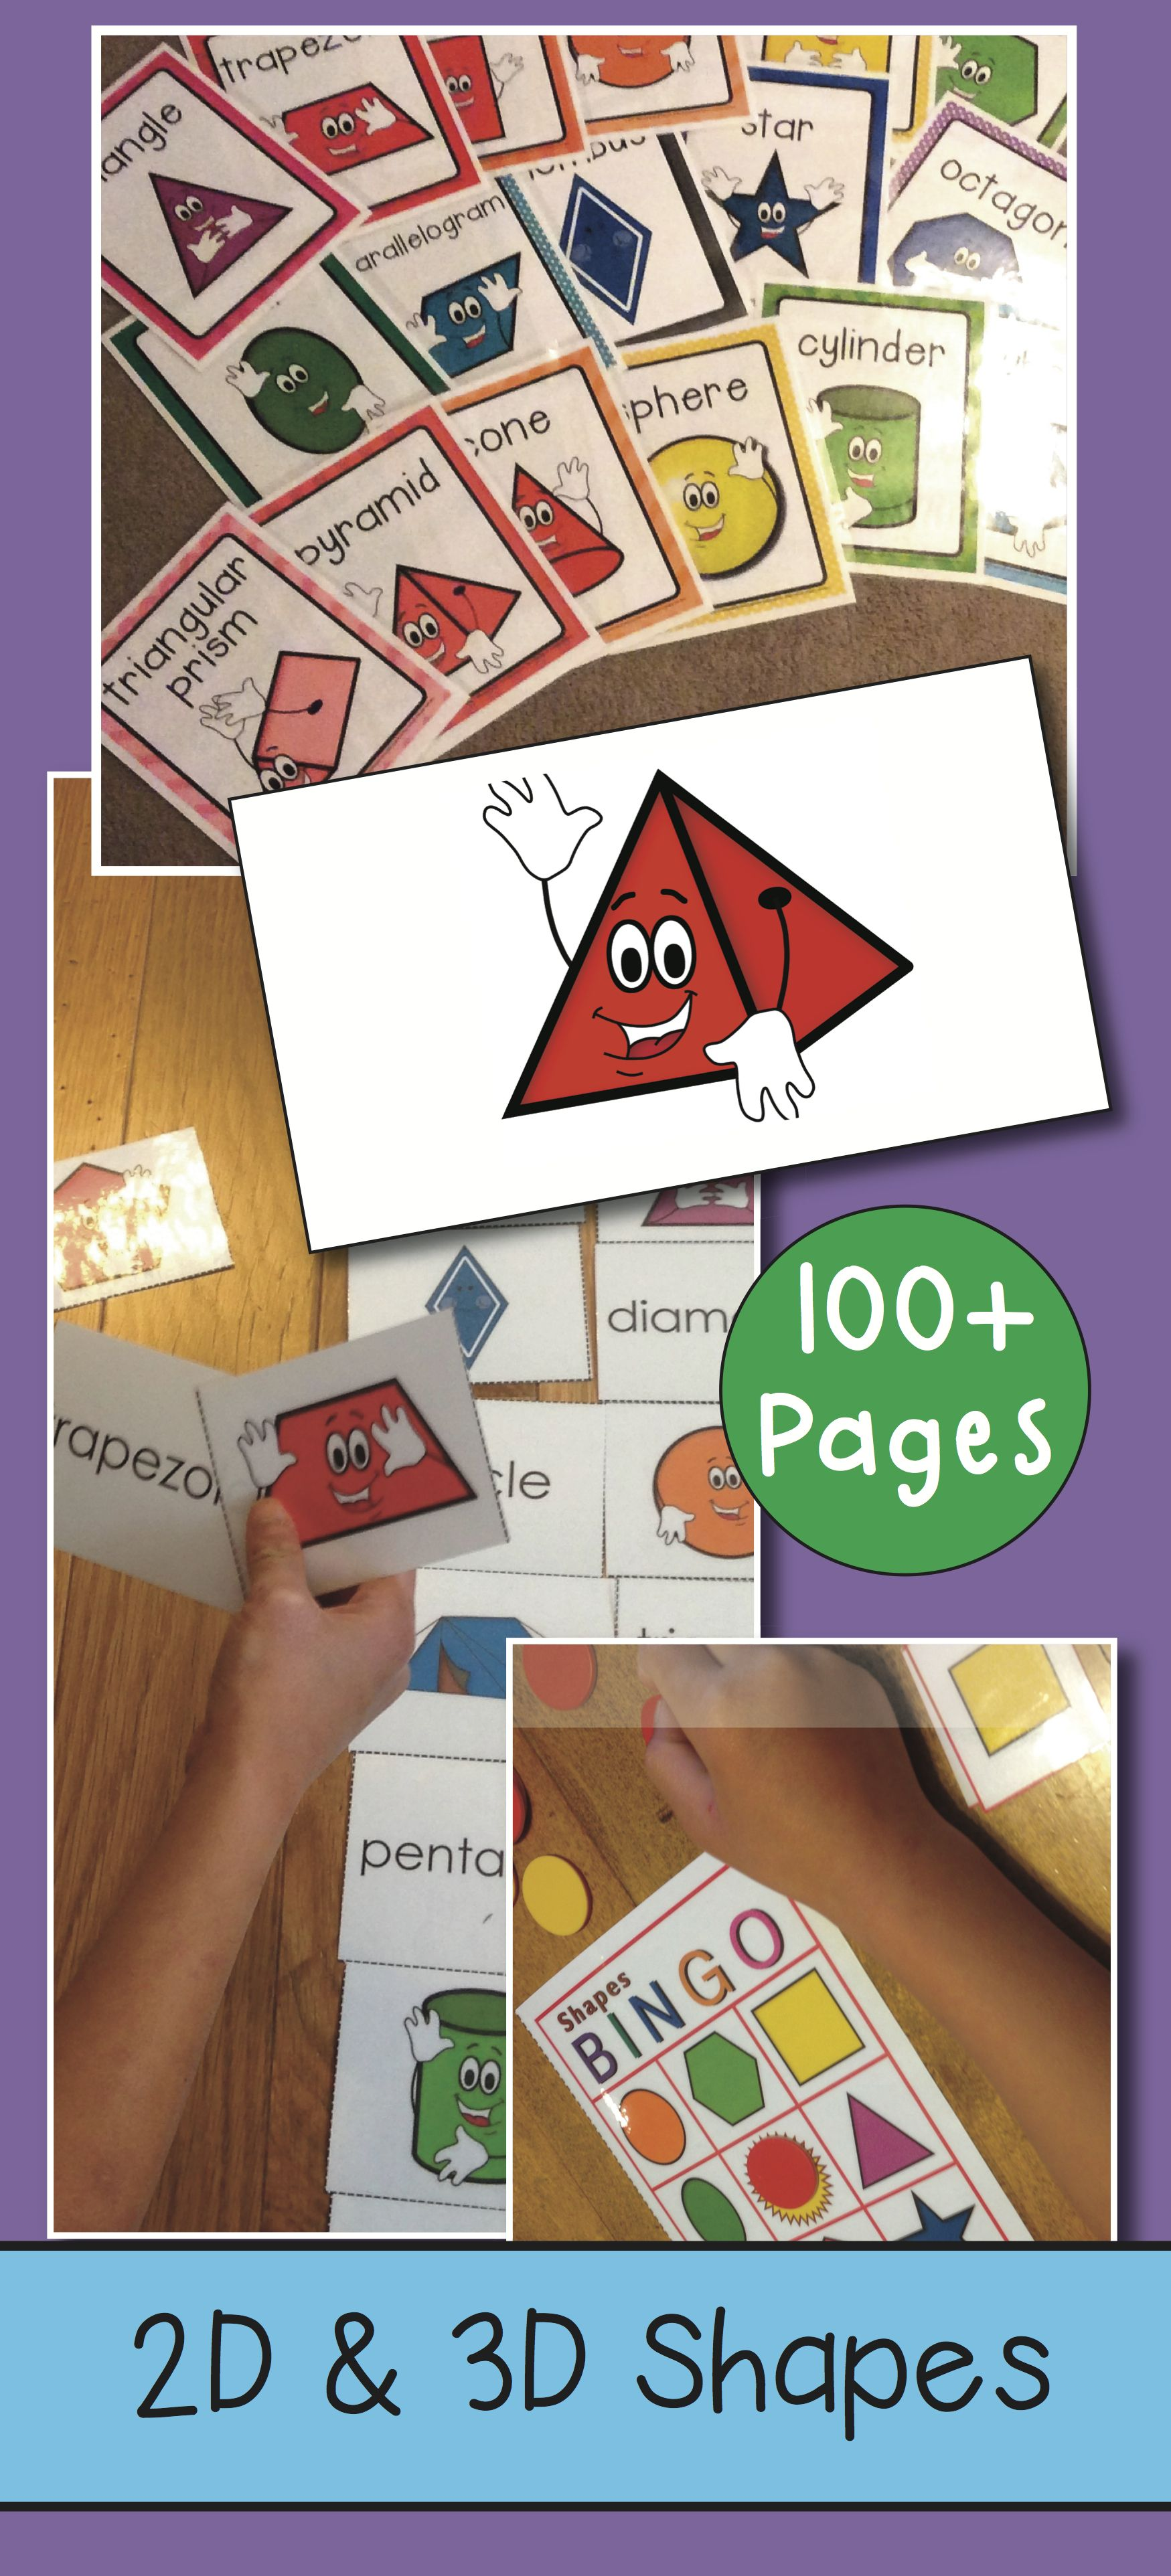 2d And 3d Shapes Packet 100 Pages Match Cards Bingo Worksheets Reader Posters 19 Shapes